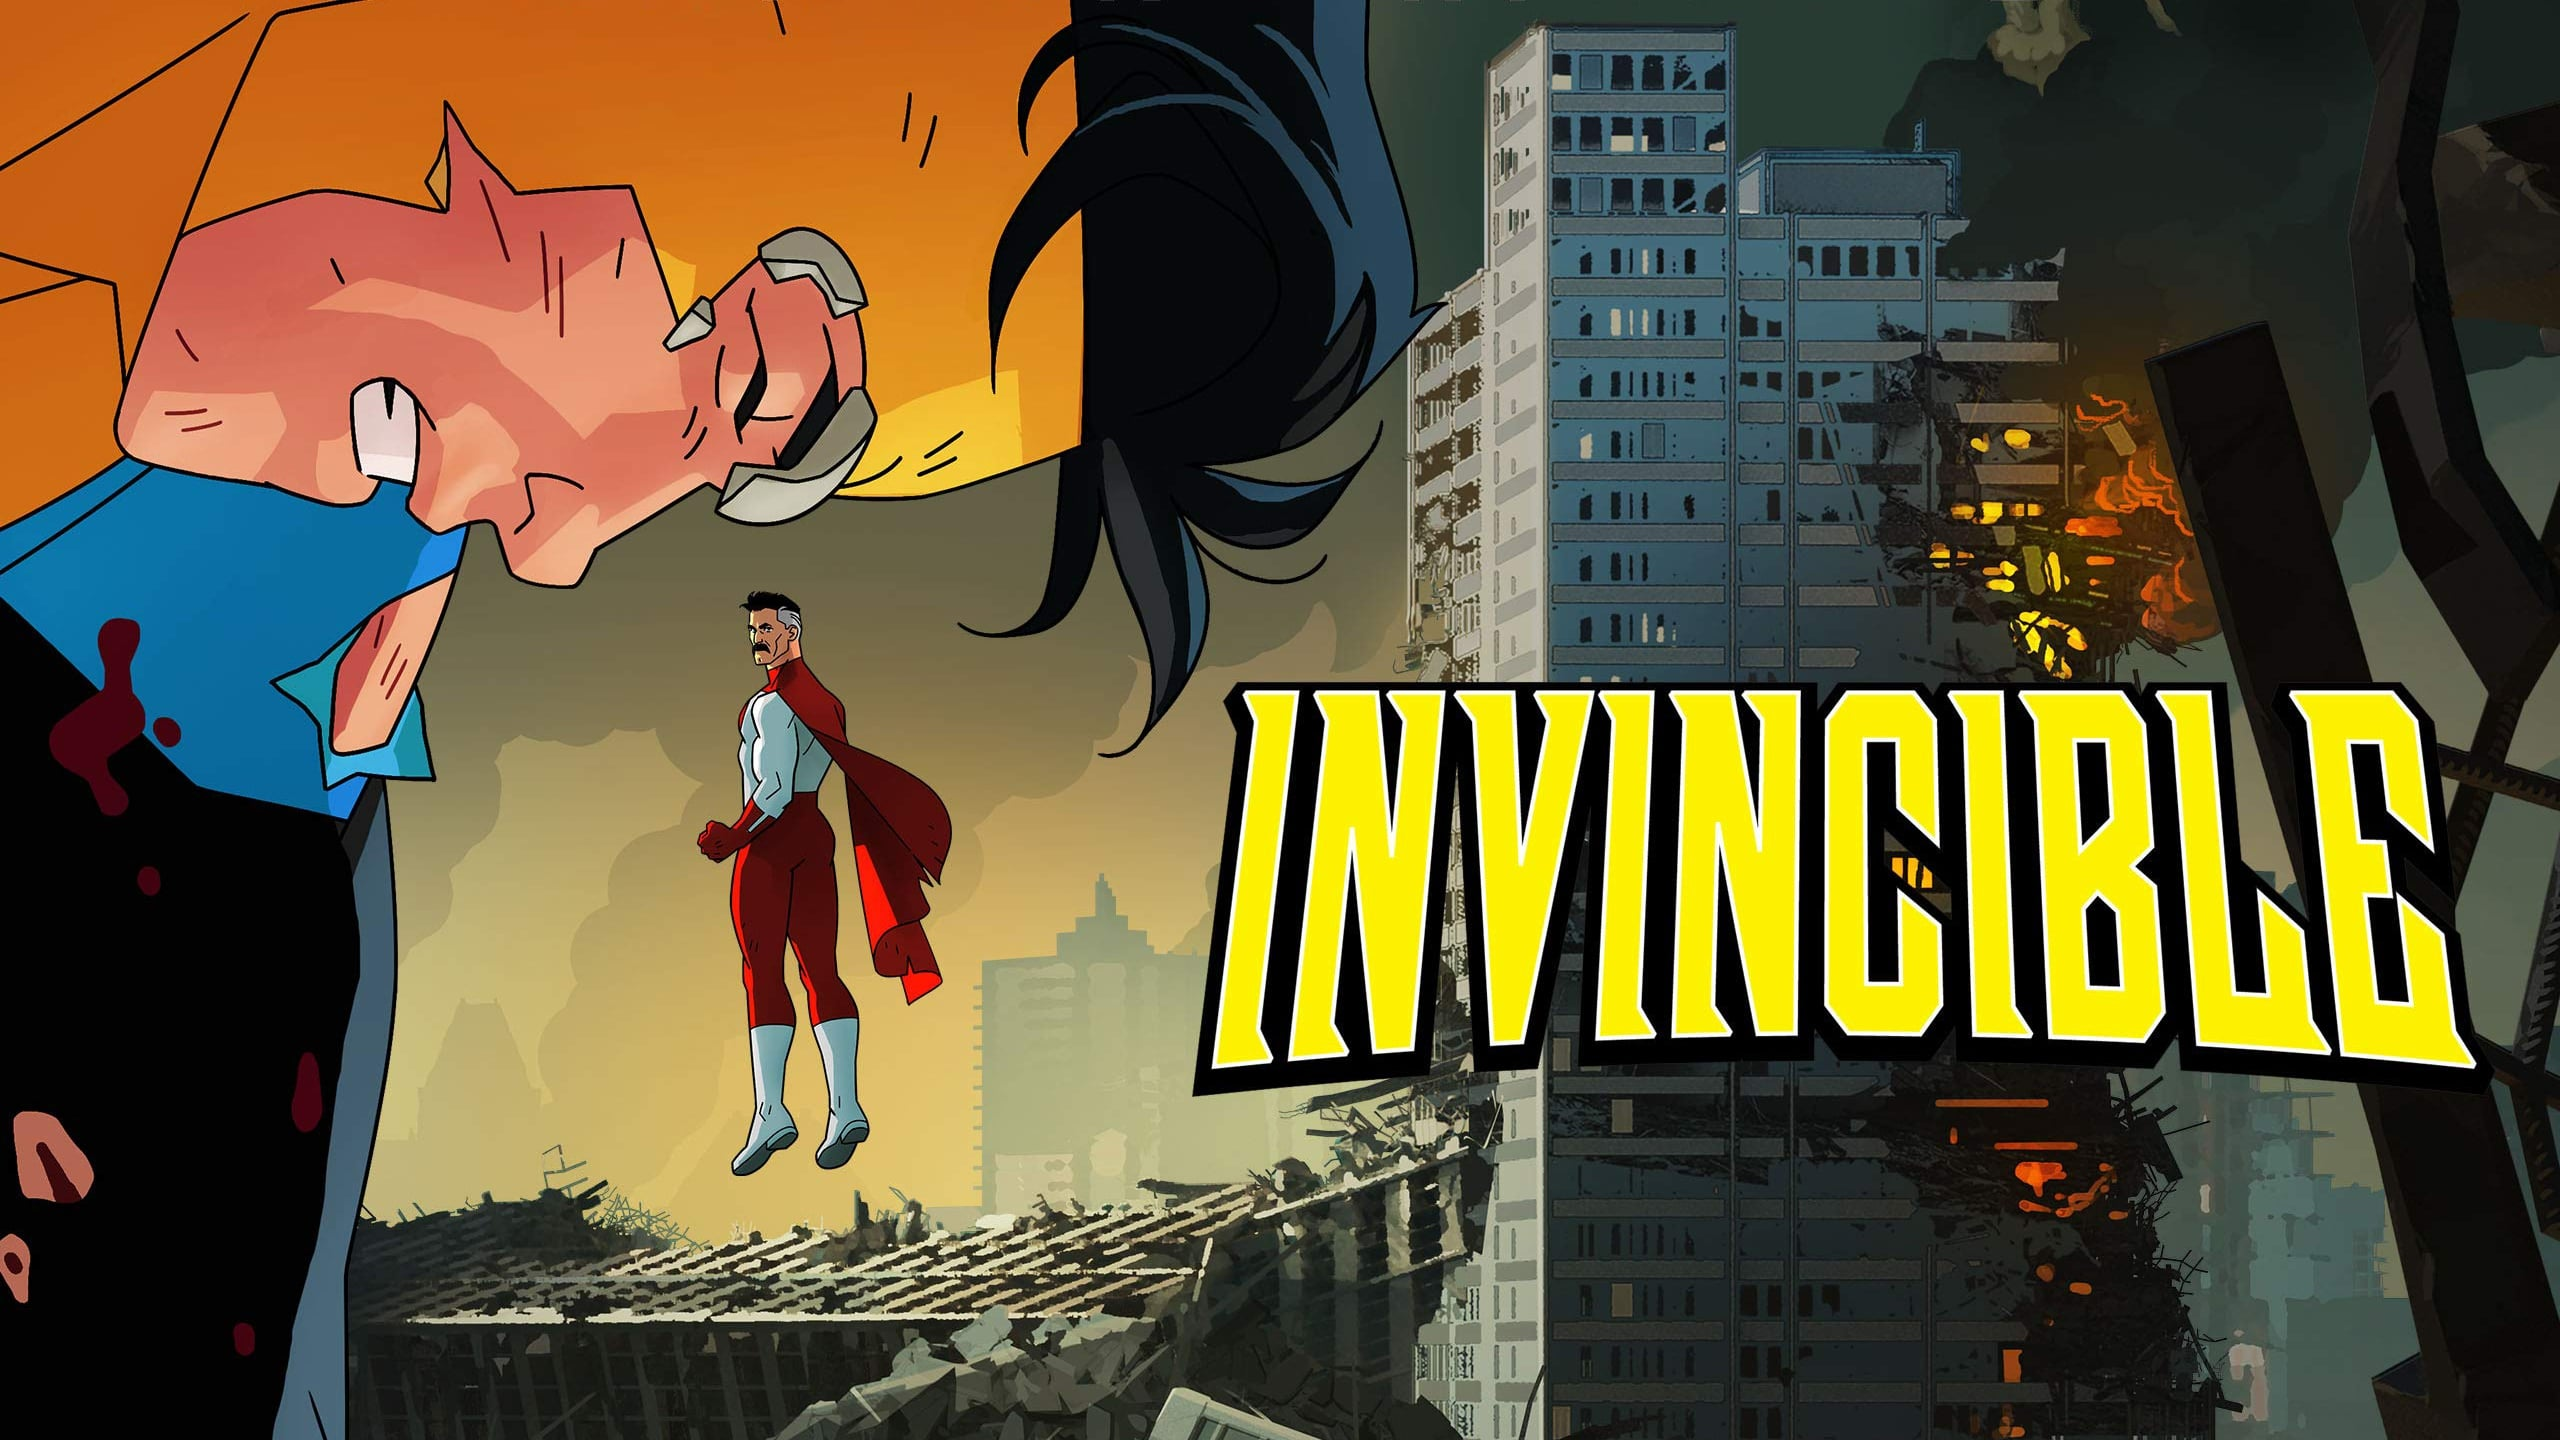 A second and third season for animated series Invincible